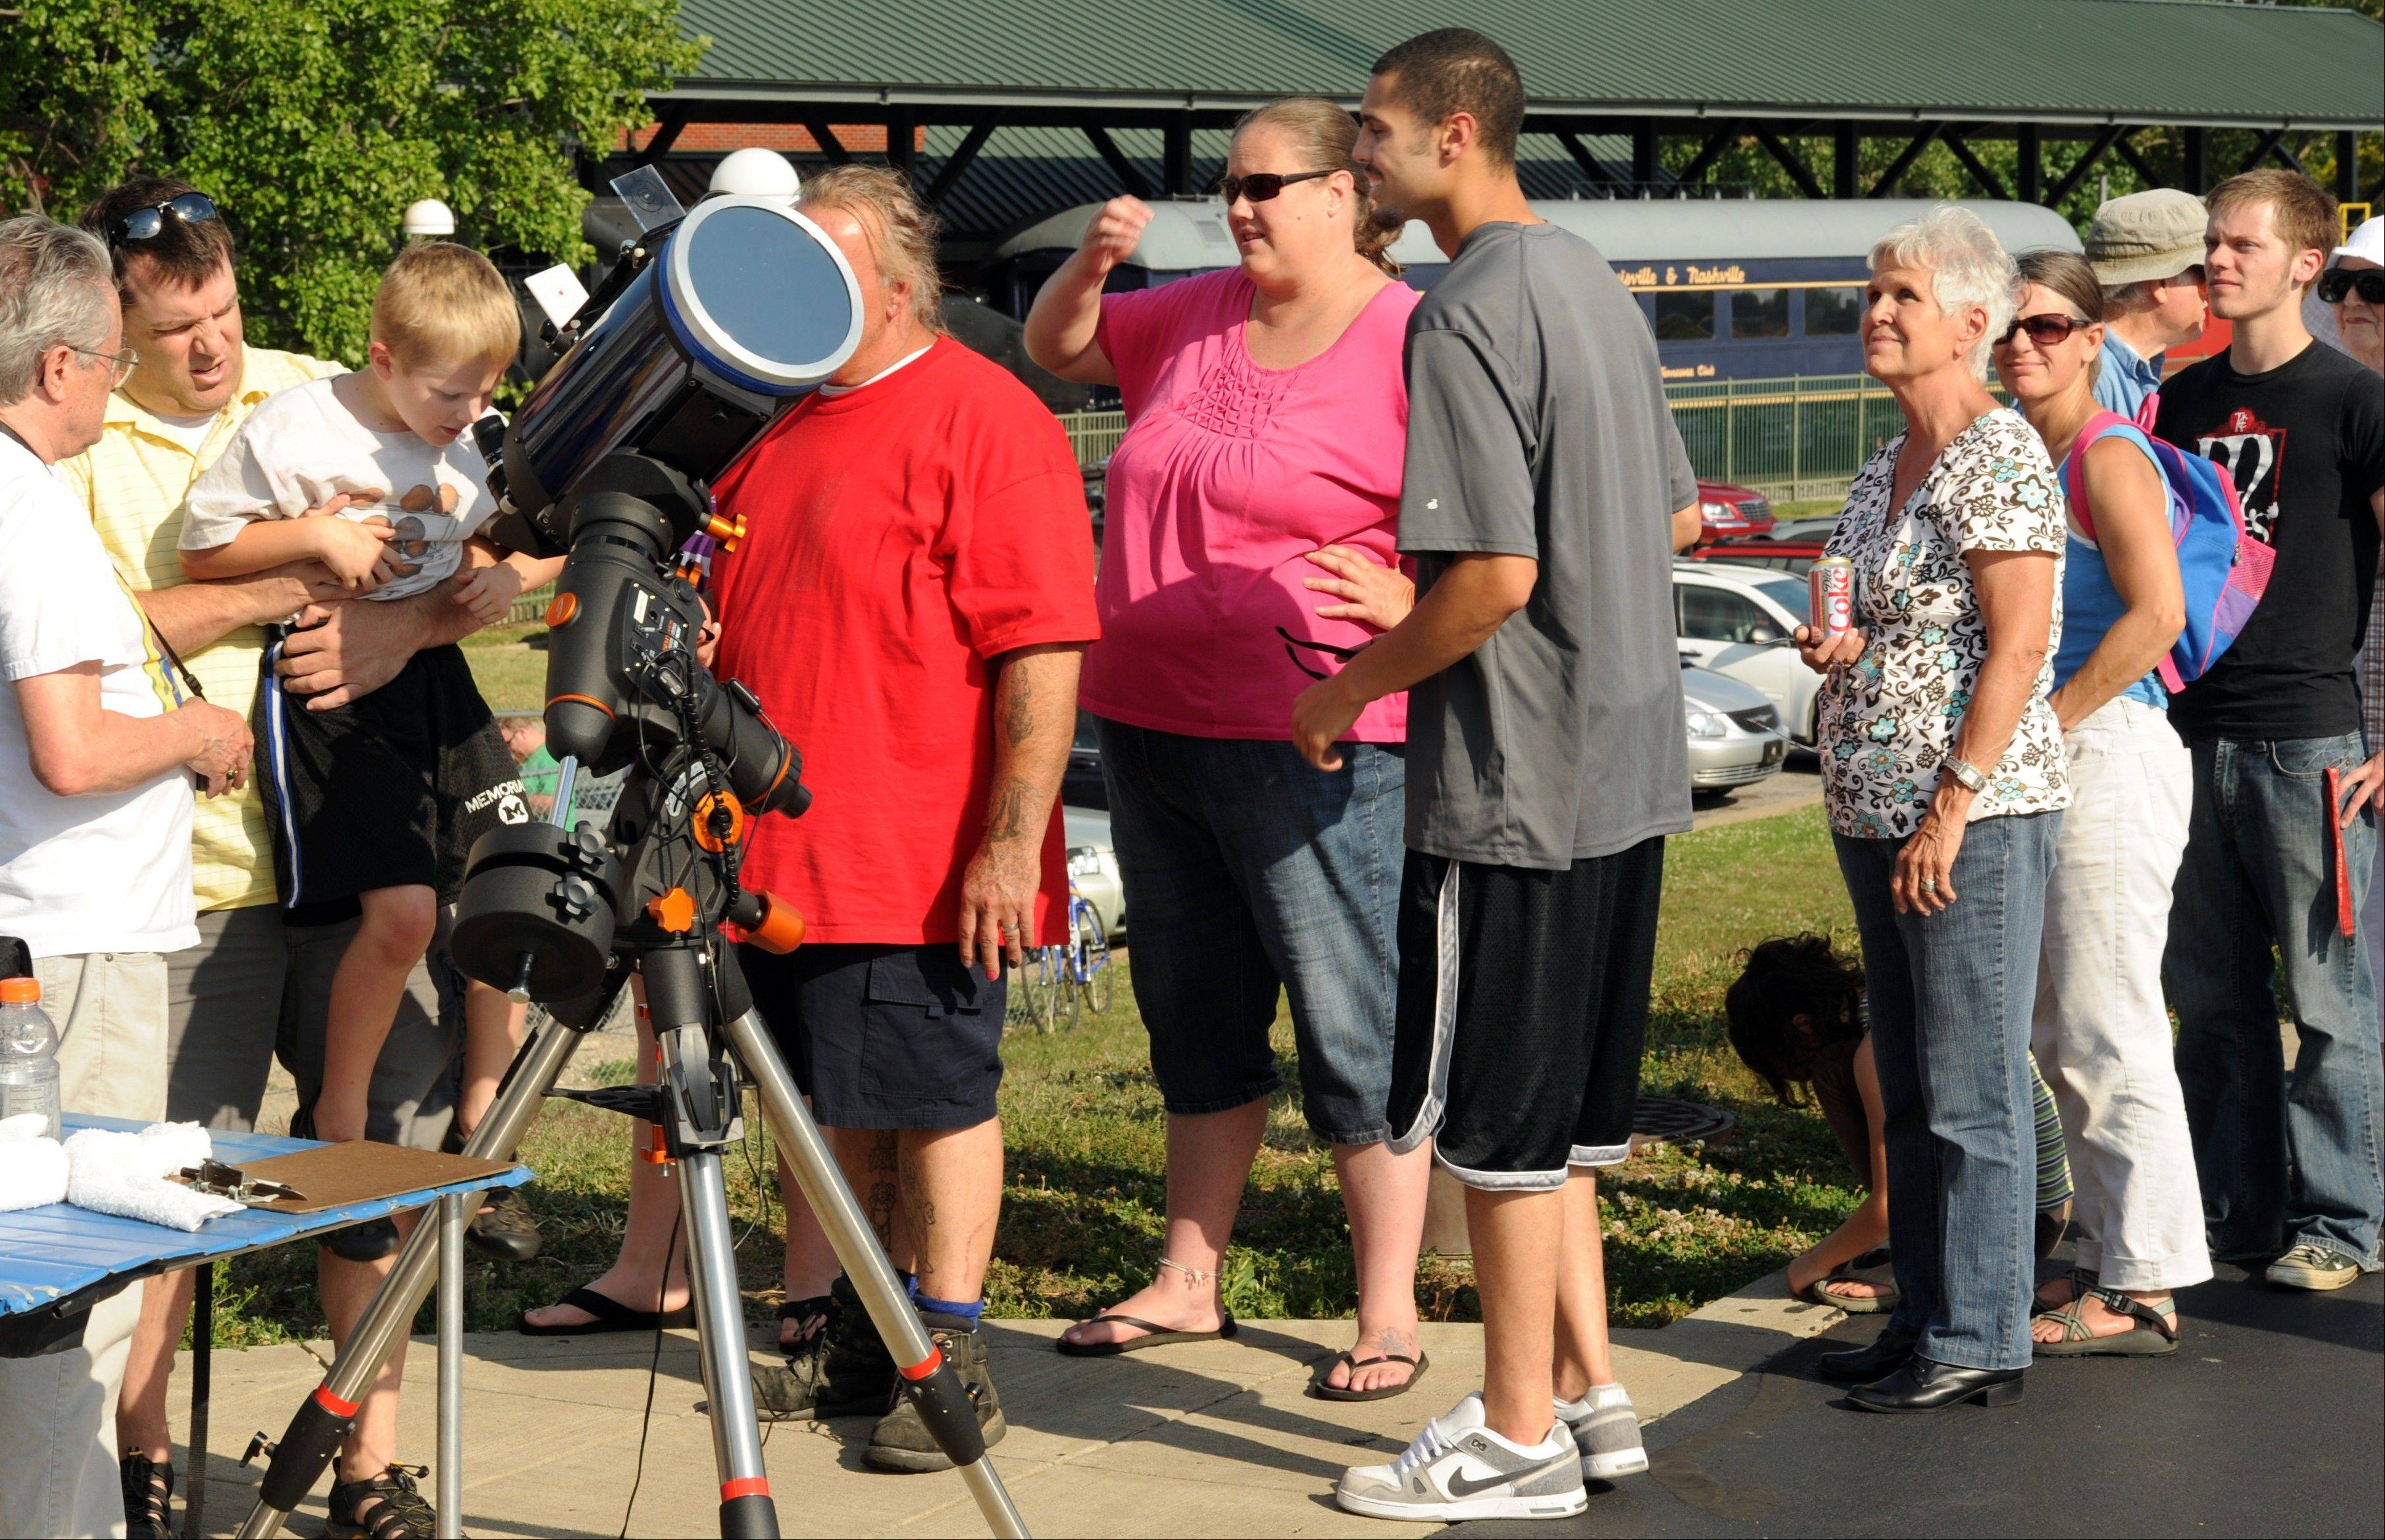 Brian Cunningham, of Evansville, Ind., second from left, holds his son, Teddy, age 7, so he can look through the telescope to see the transit of Venus on Tuesday, June 5, 2012. Cunningham had done the same for his two other sons Zach, 11 and Ben, 9, as they were part of a crowd that gathered along the Ohio River behind the Evansville Museum of Arts, History & Science in Evansville, Ind. to watch Venus as the planet moves in front of the Sun. Members of the Evansville Astronomical Society set up telescopes so people could look at the event.